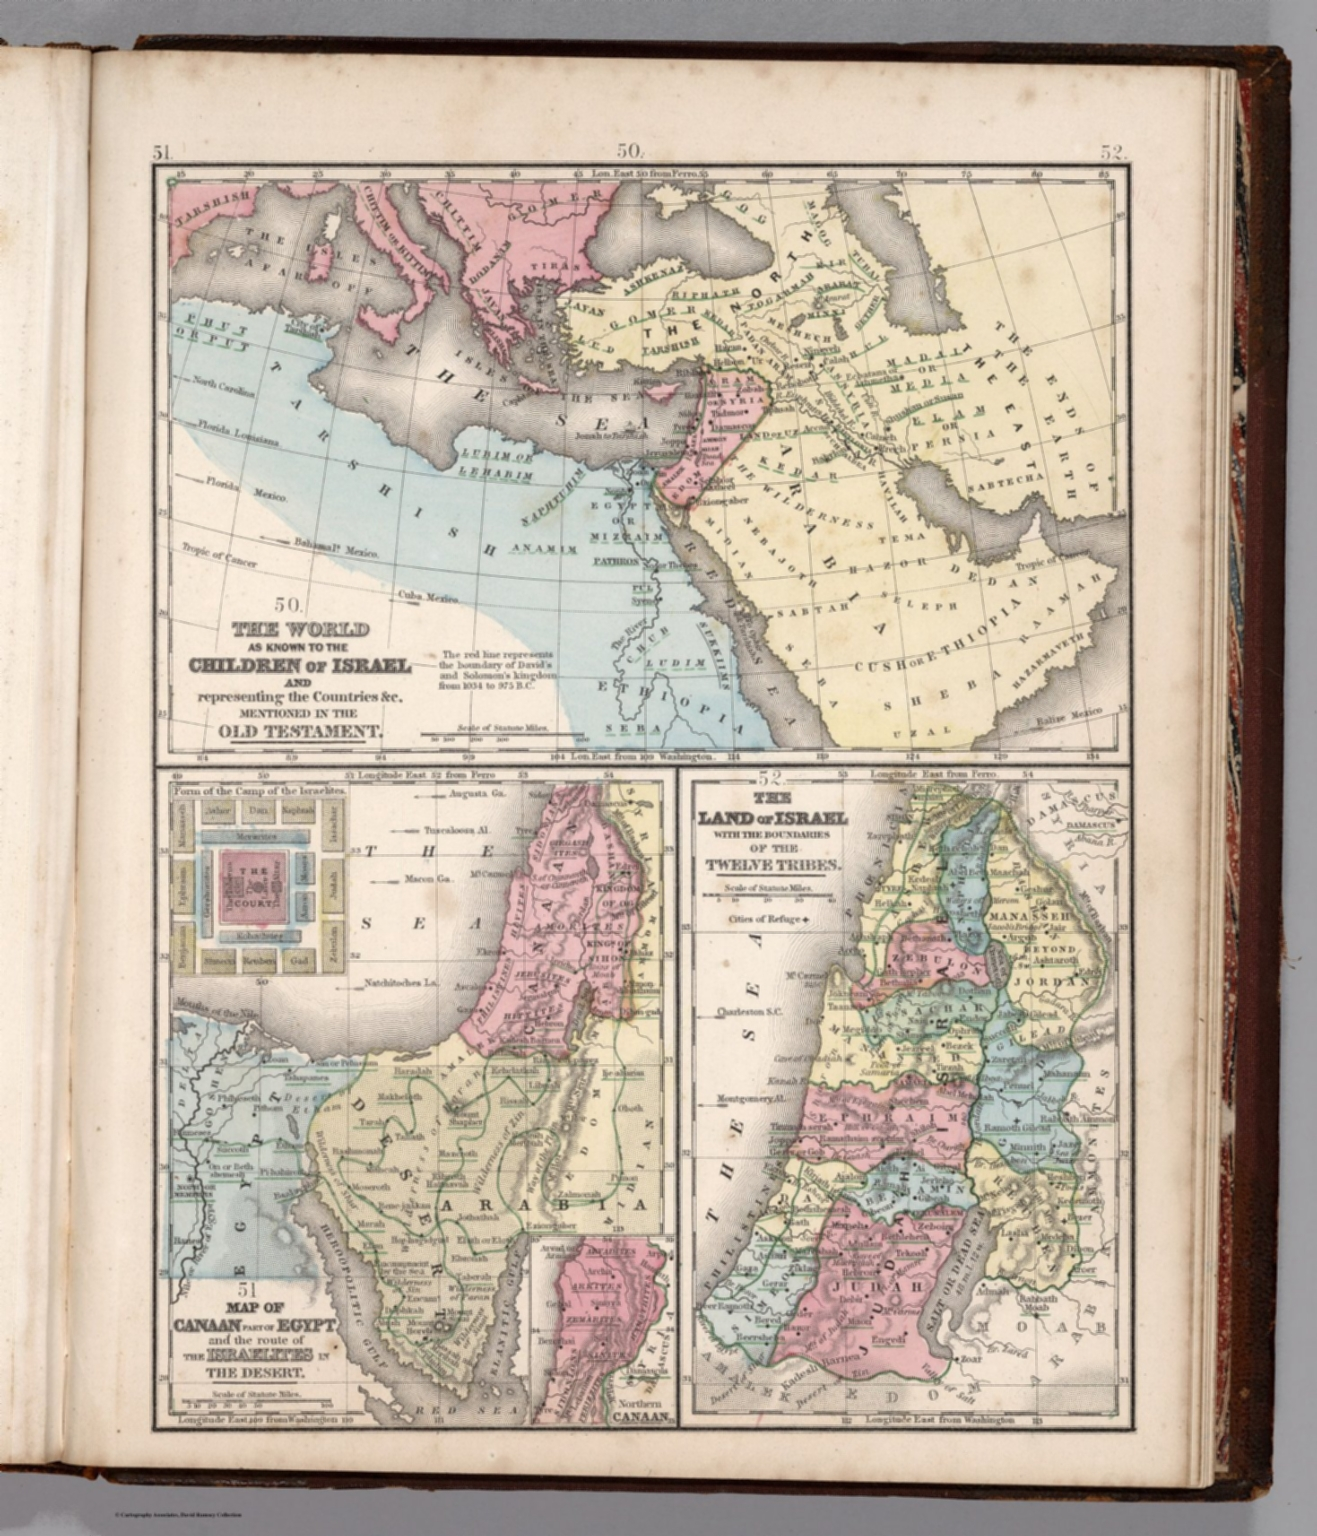 Map no 50 old testament 51 map of canaan 52 the land of israel old testament 51 map of canaan 52 the land of israel gumiabroncs Images